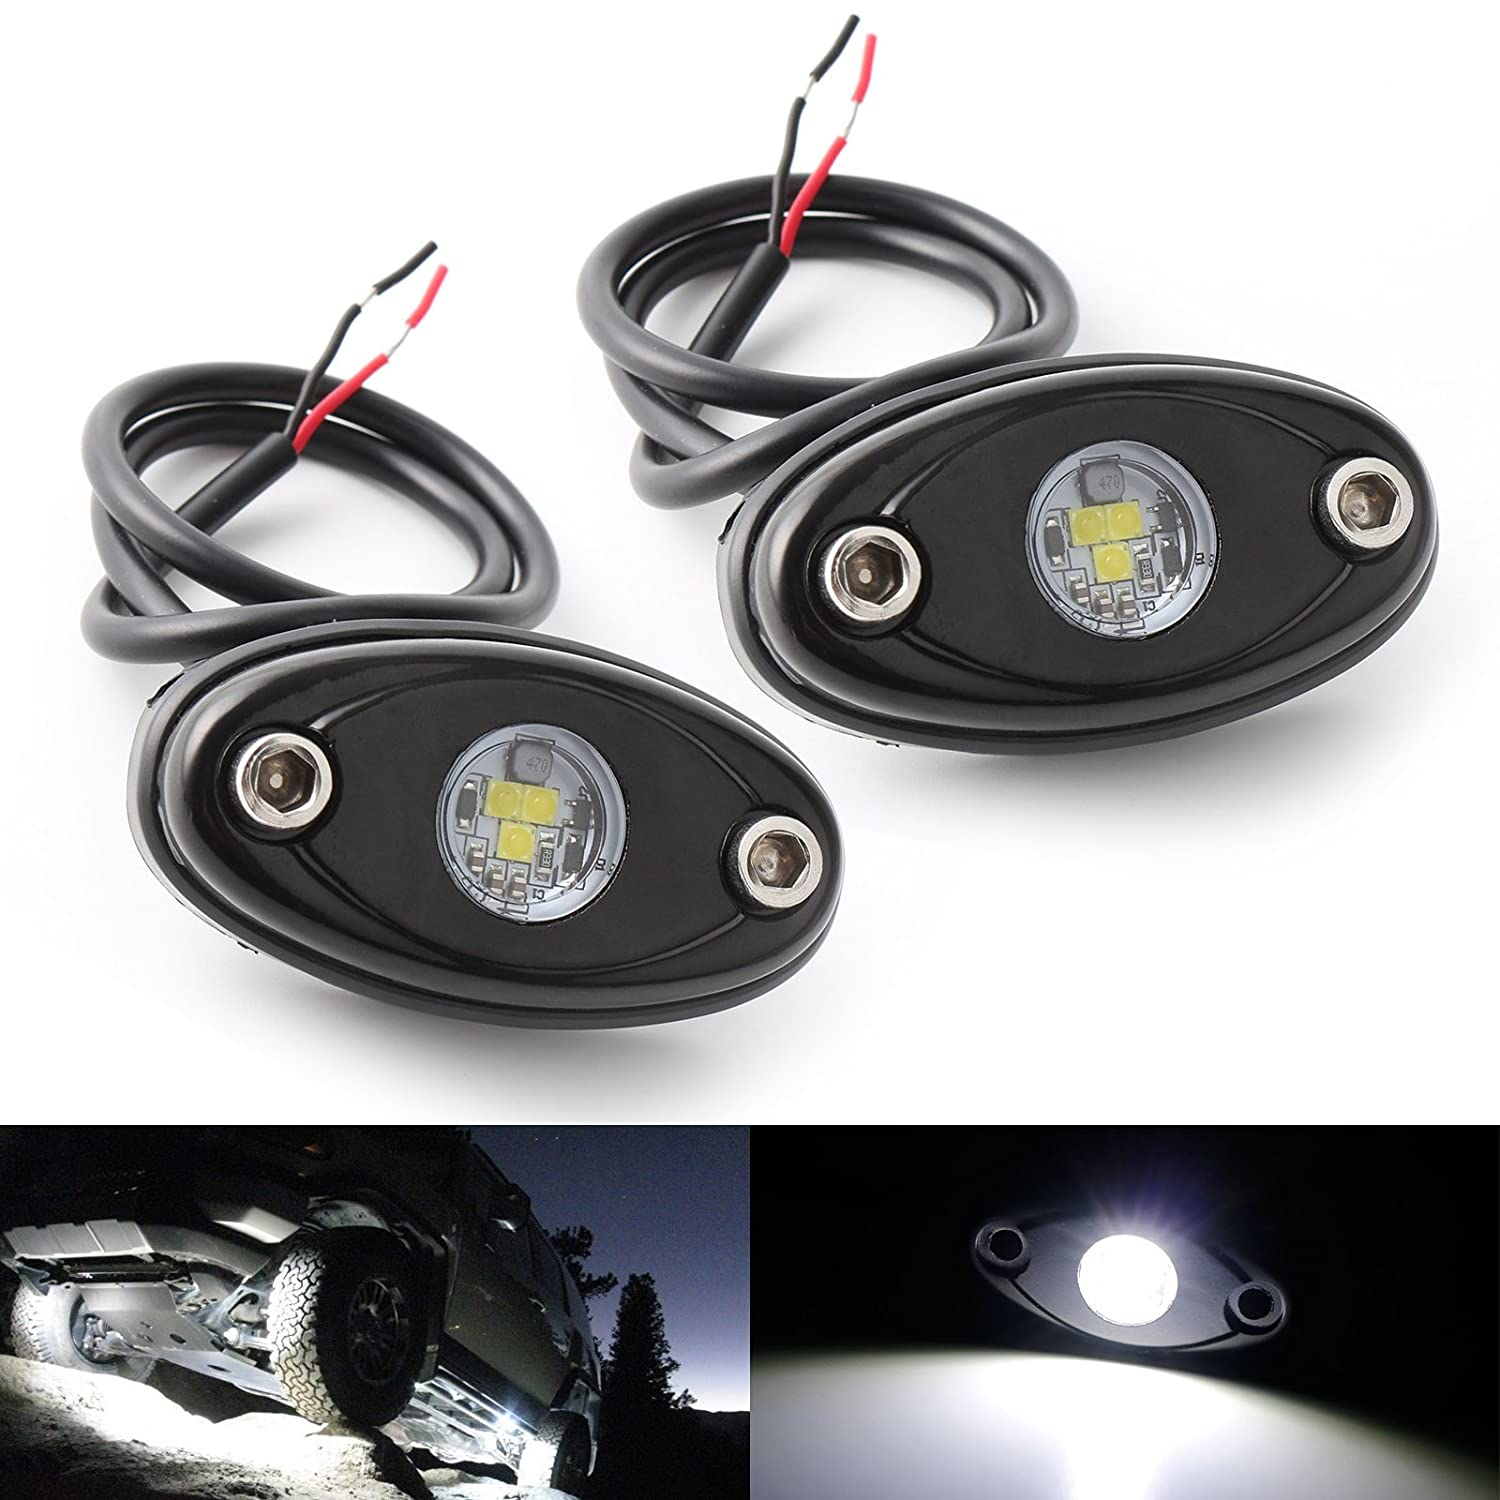 Ledmircy Led Rock Lights White Kit For Jeep Off Road Sale 10pcs Universal Light Bar Wiring Harness Truck Auto Car Boat Atv Suv Waterproof High Power Underbody Glow Neon Trail Rig